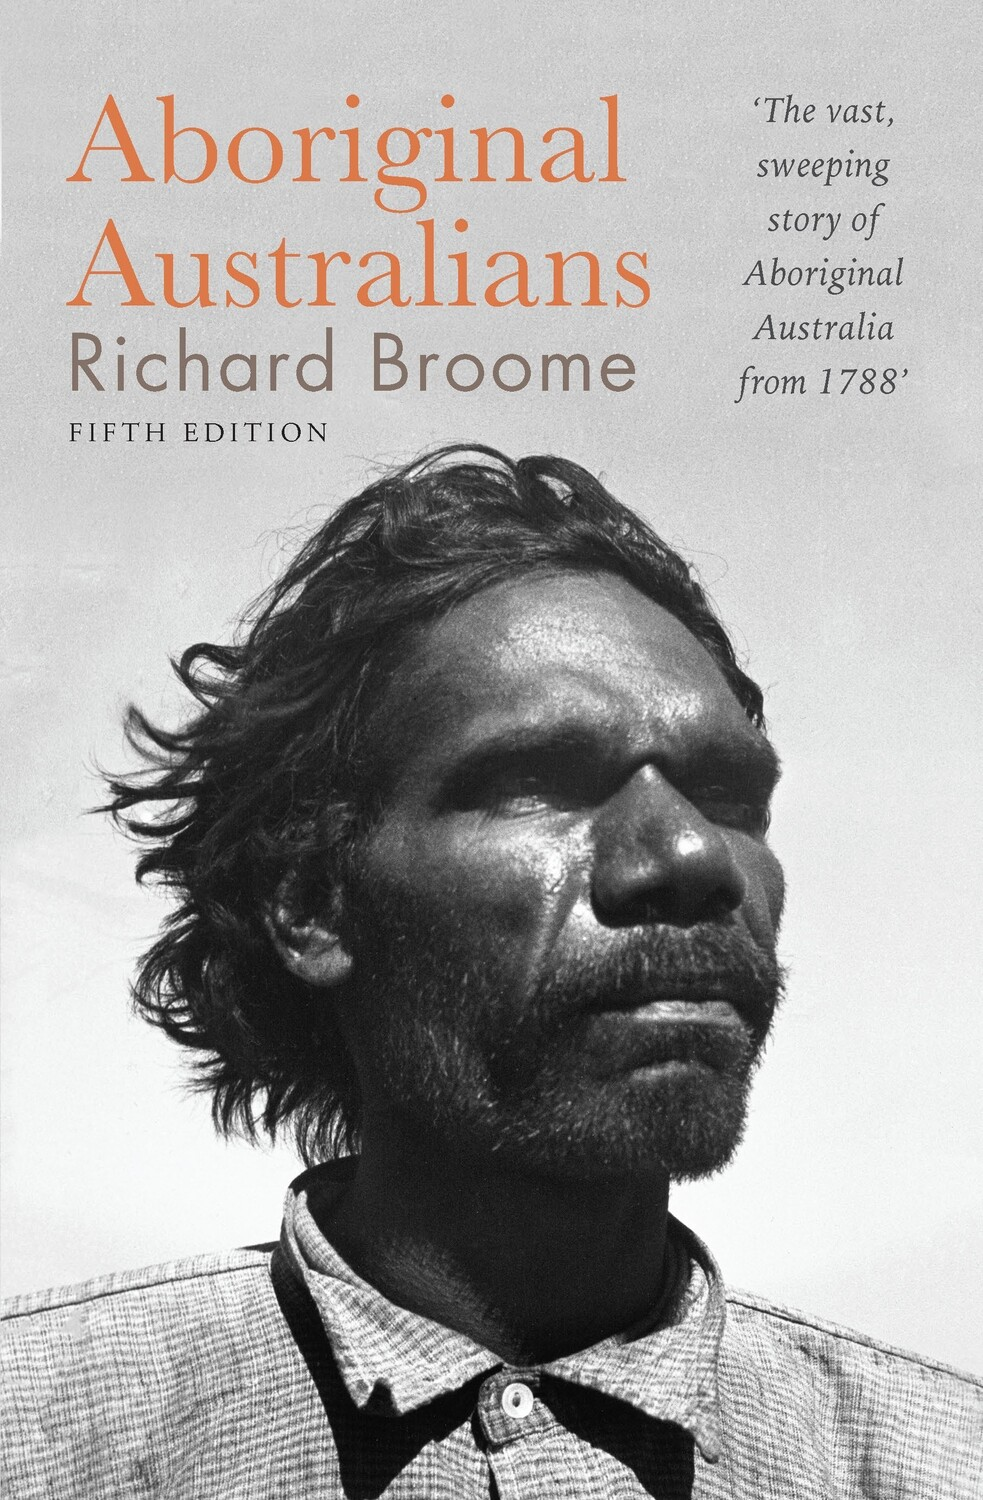 Aboriginal Australians - A history since 1788 by Richard Broome